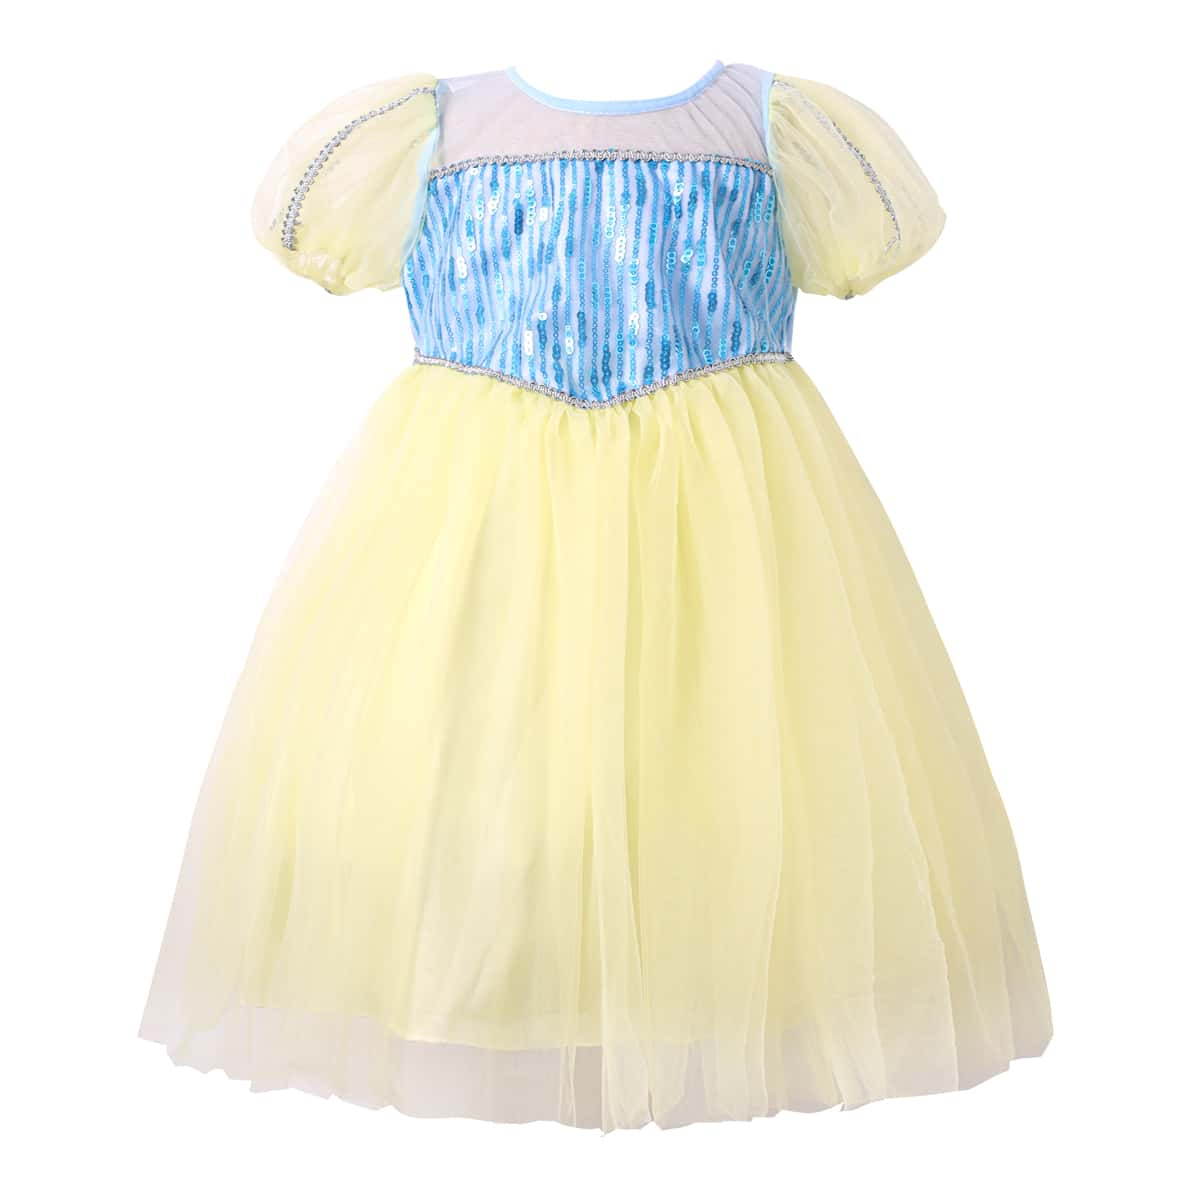 Toddler Girls Contrast Sequins Puff Sleeve Mesh Overlay Party Dress